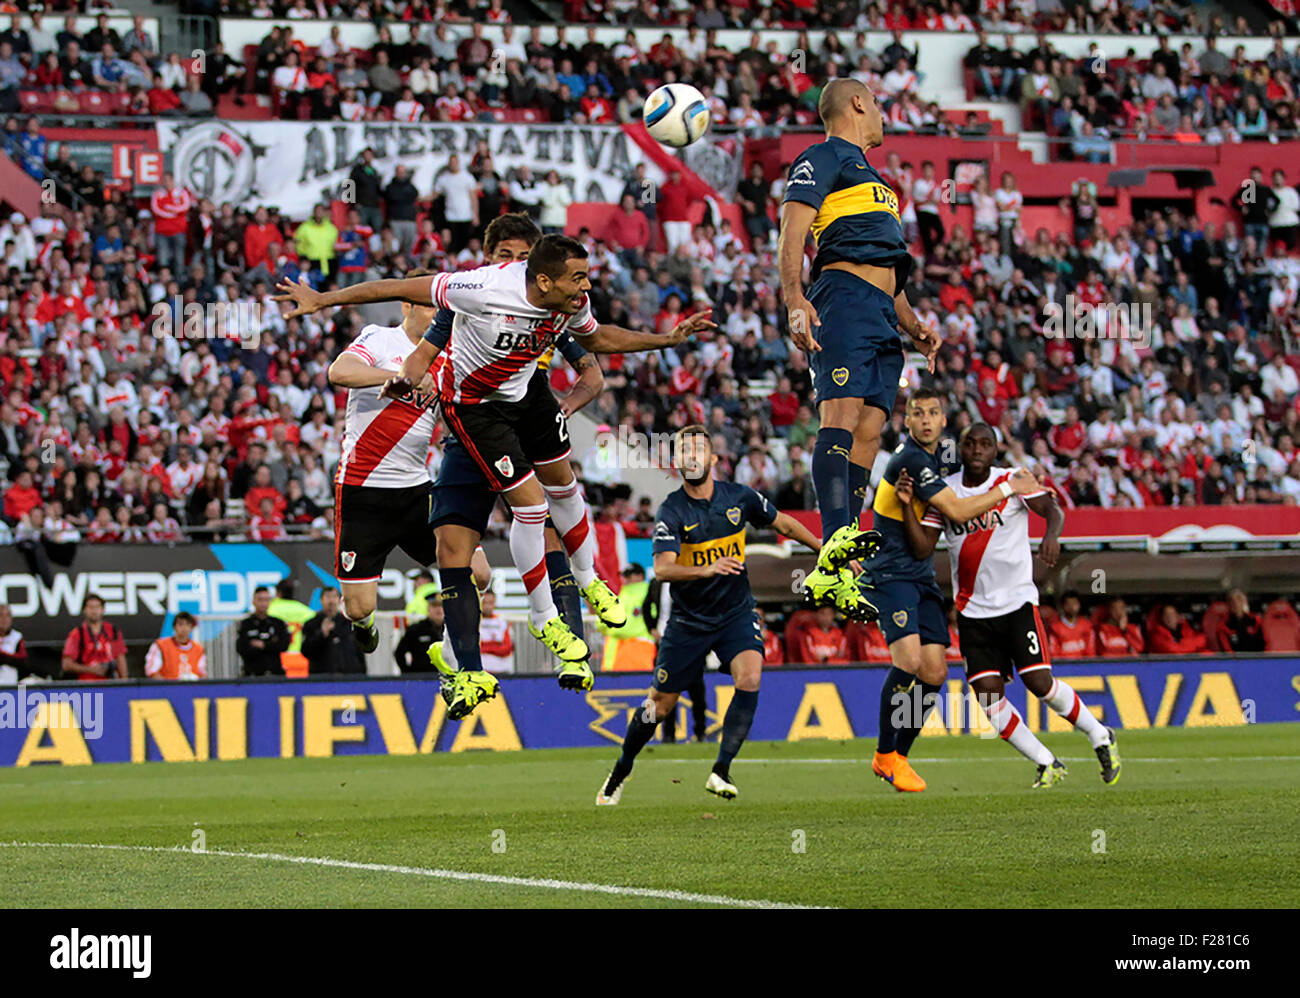 Buenos Aires, Argentina. 13th Sep, 2015. RIVER PLATE X BOCA JUNIORS - Gabriel Mercado of River Plate tries to hit - Stock Image